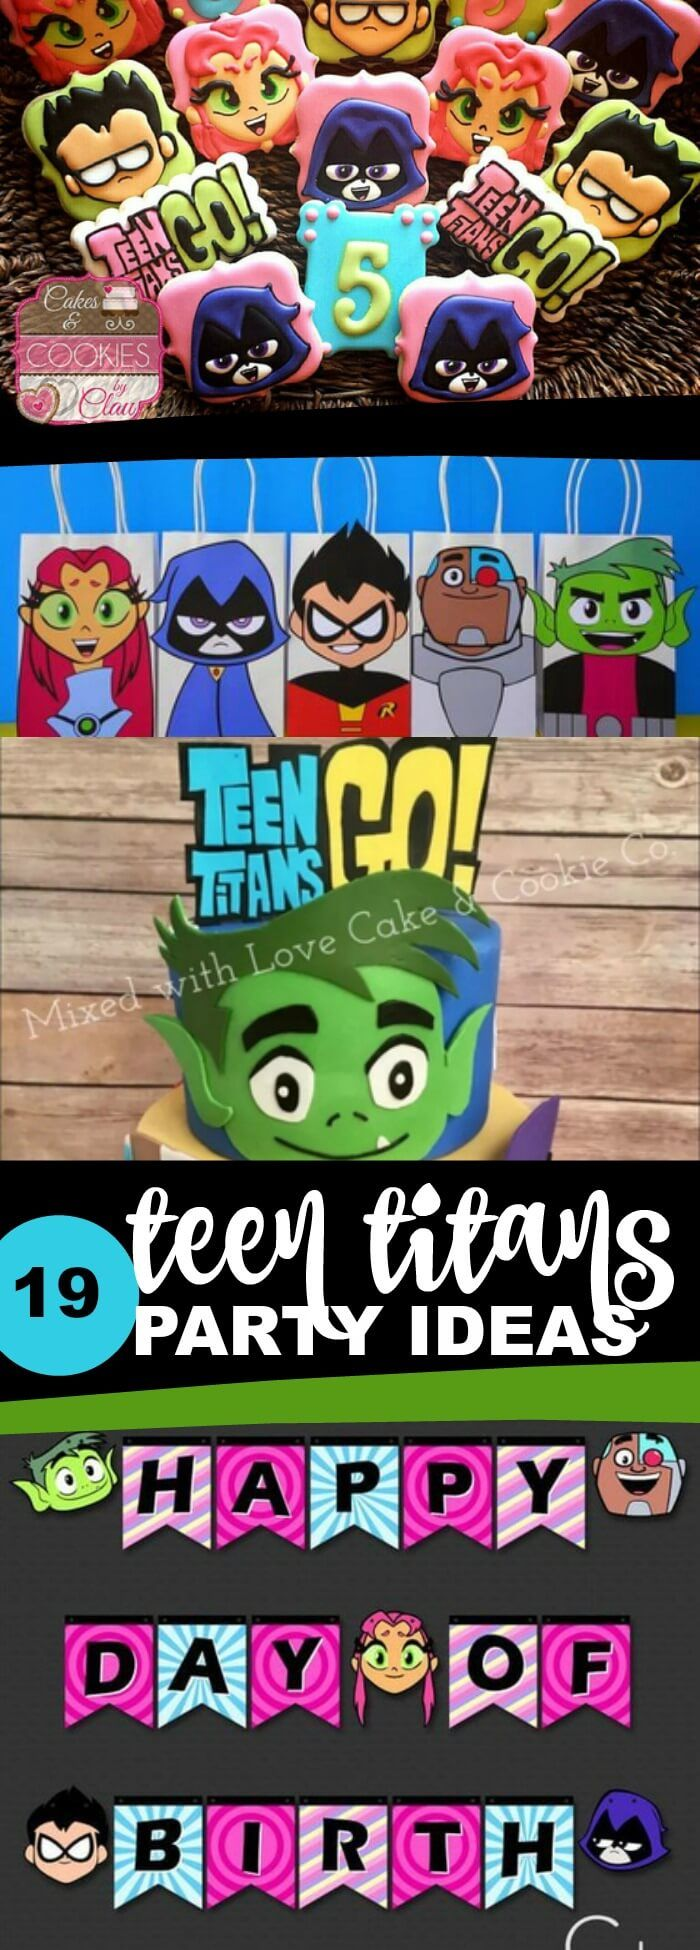 Teeny Titans - Teen Titans Go! for Android - Download